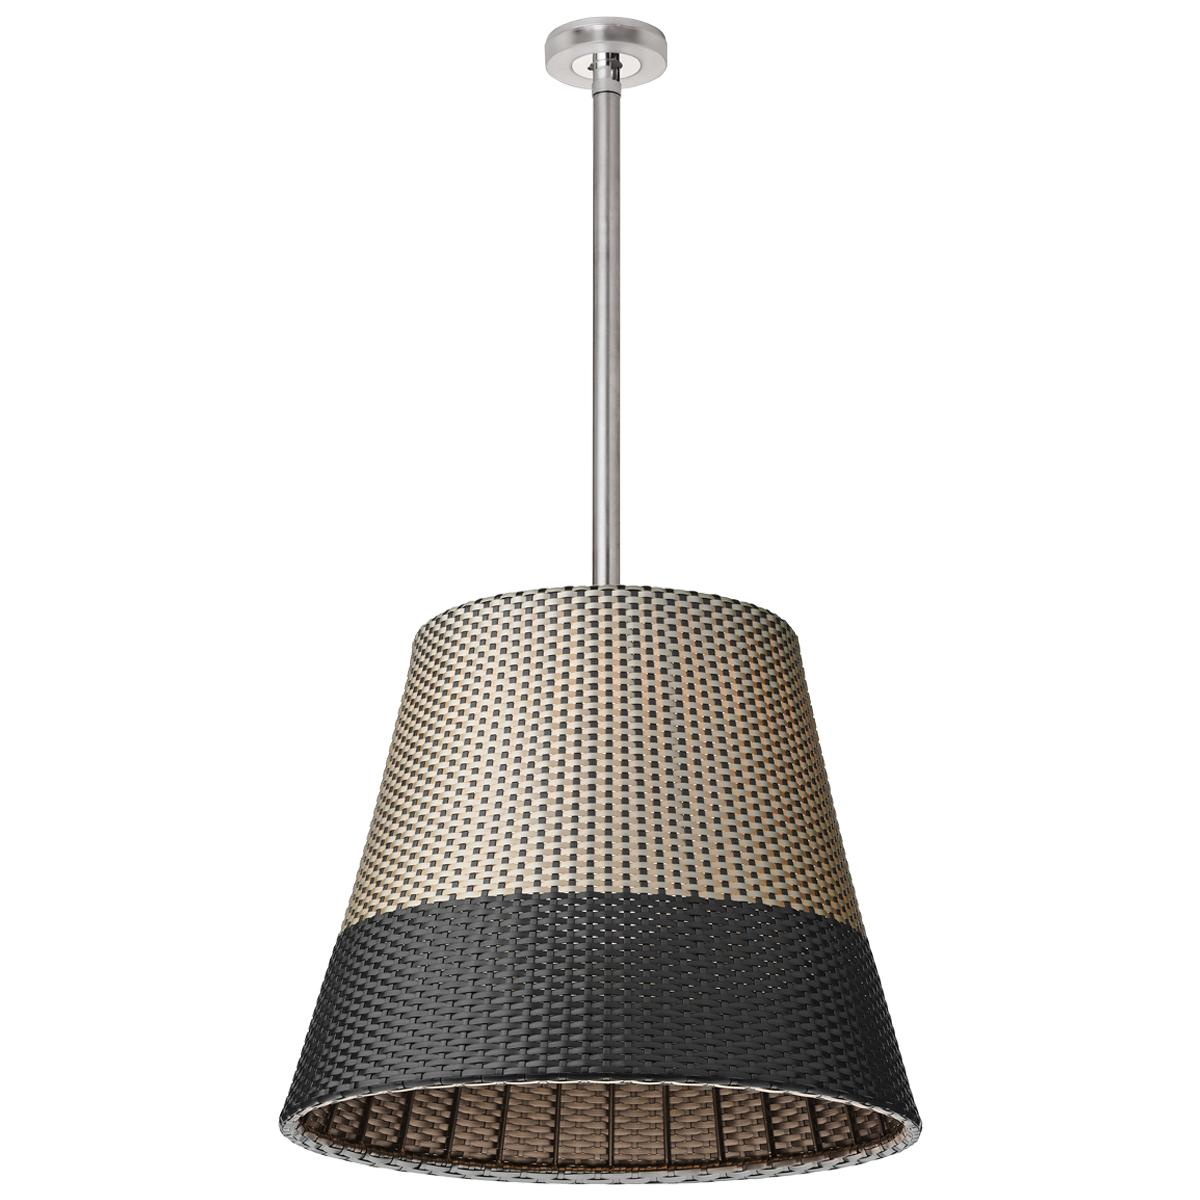 FLOS Romeo Outdoor C3 Light in Panama by Philippe Starck